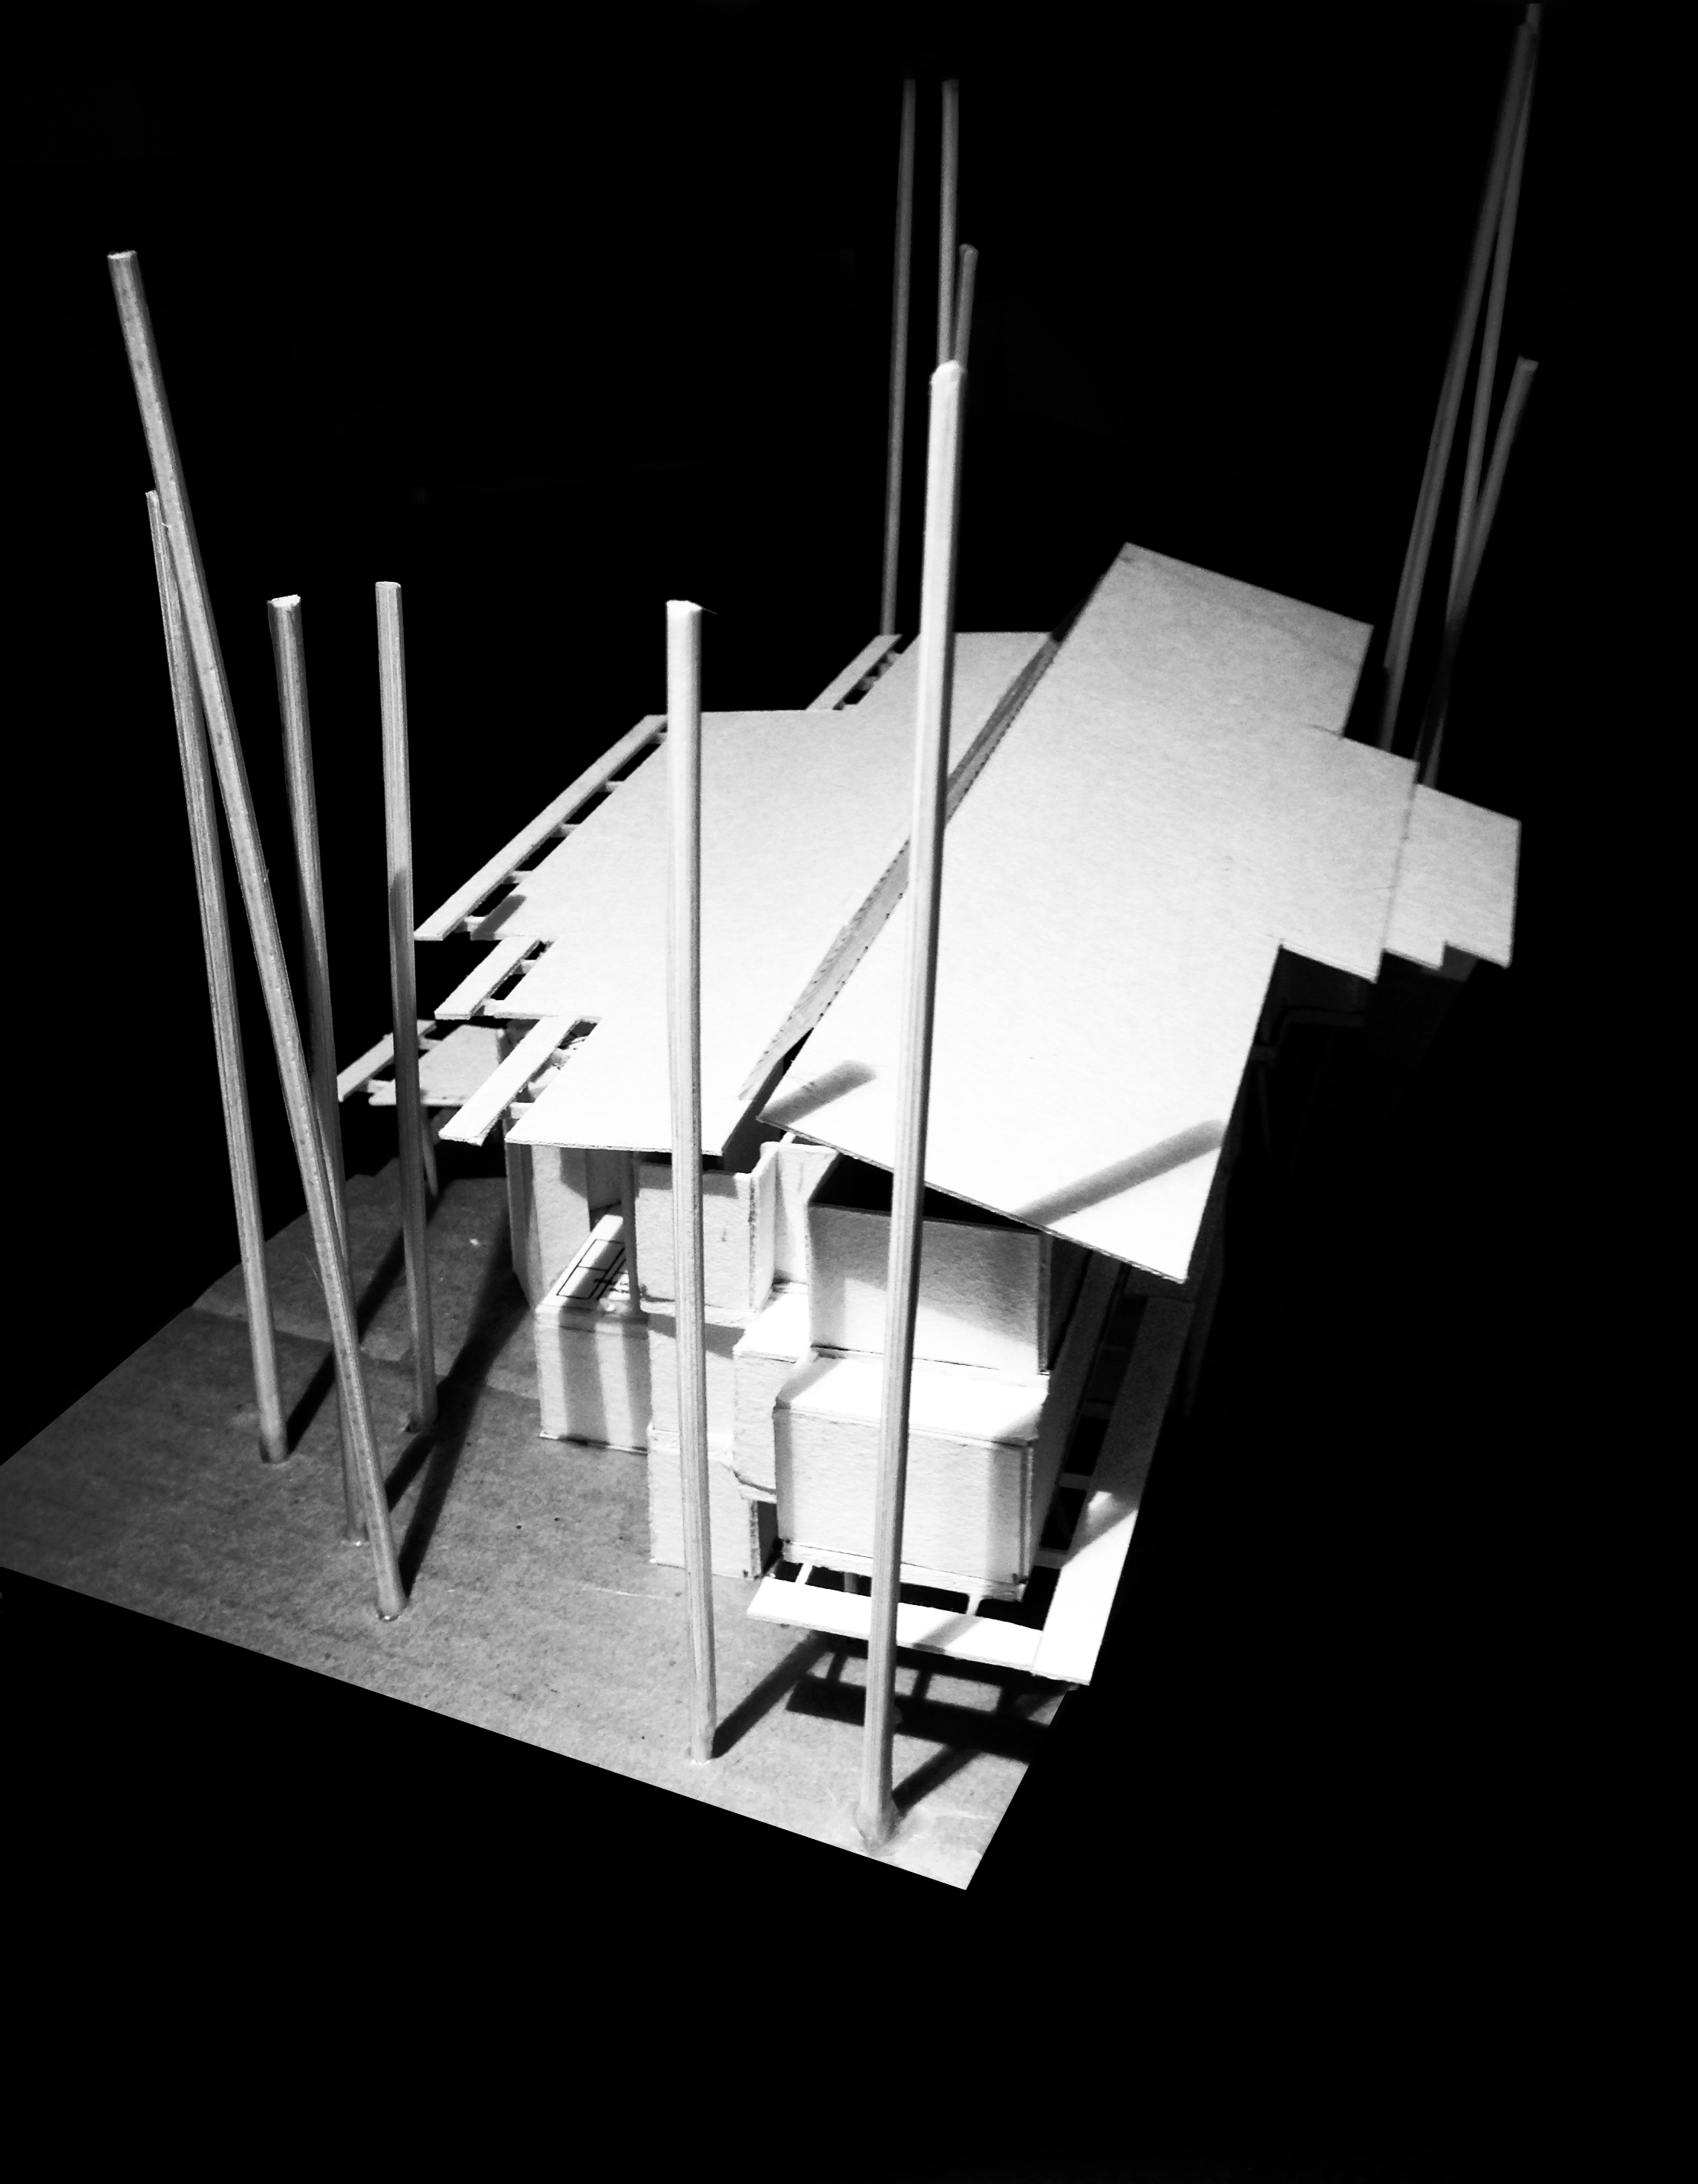 3 Storey Building design model - North End Looking South, Parkside View